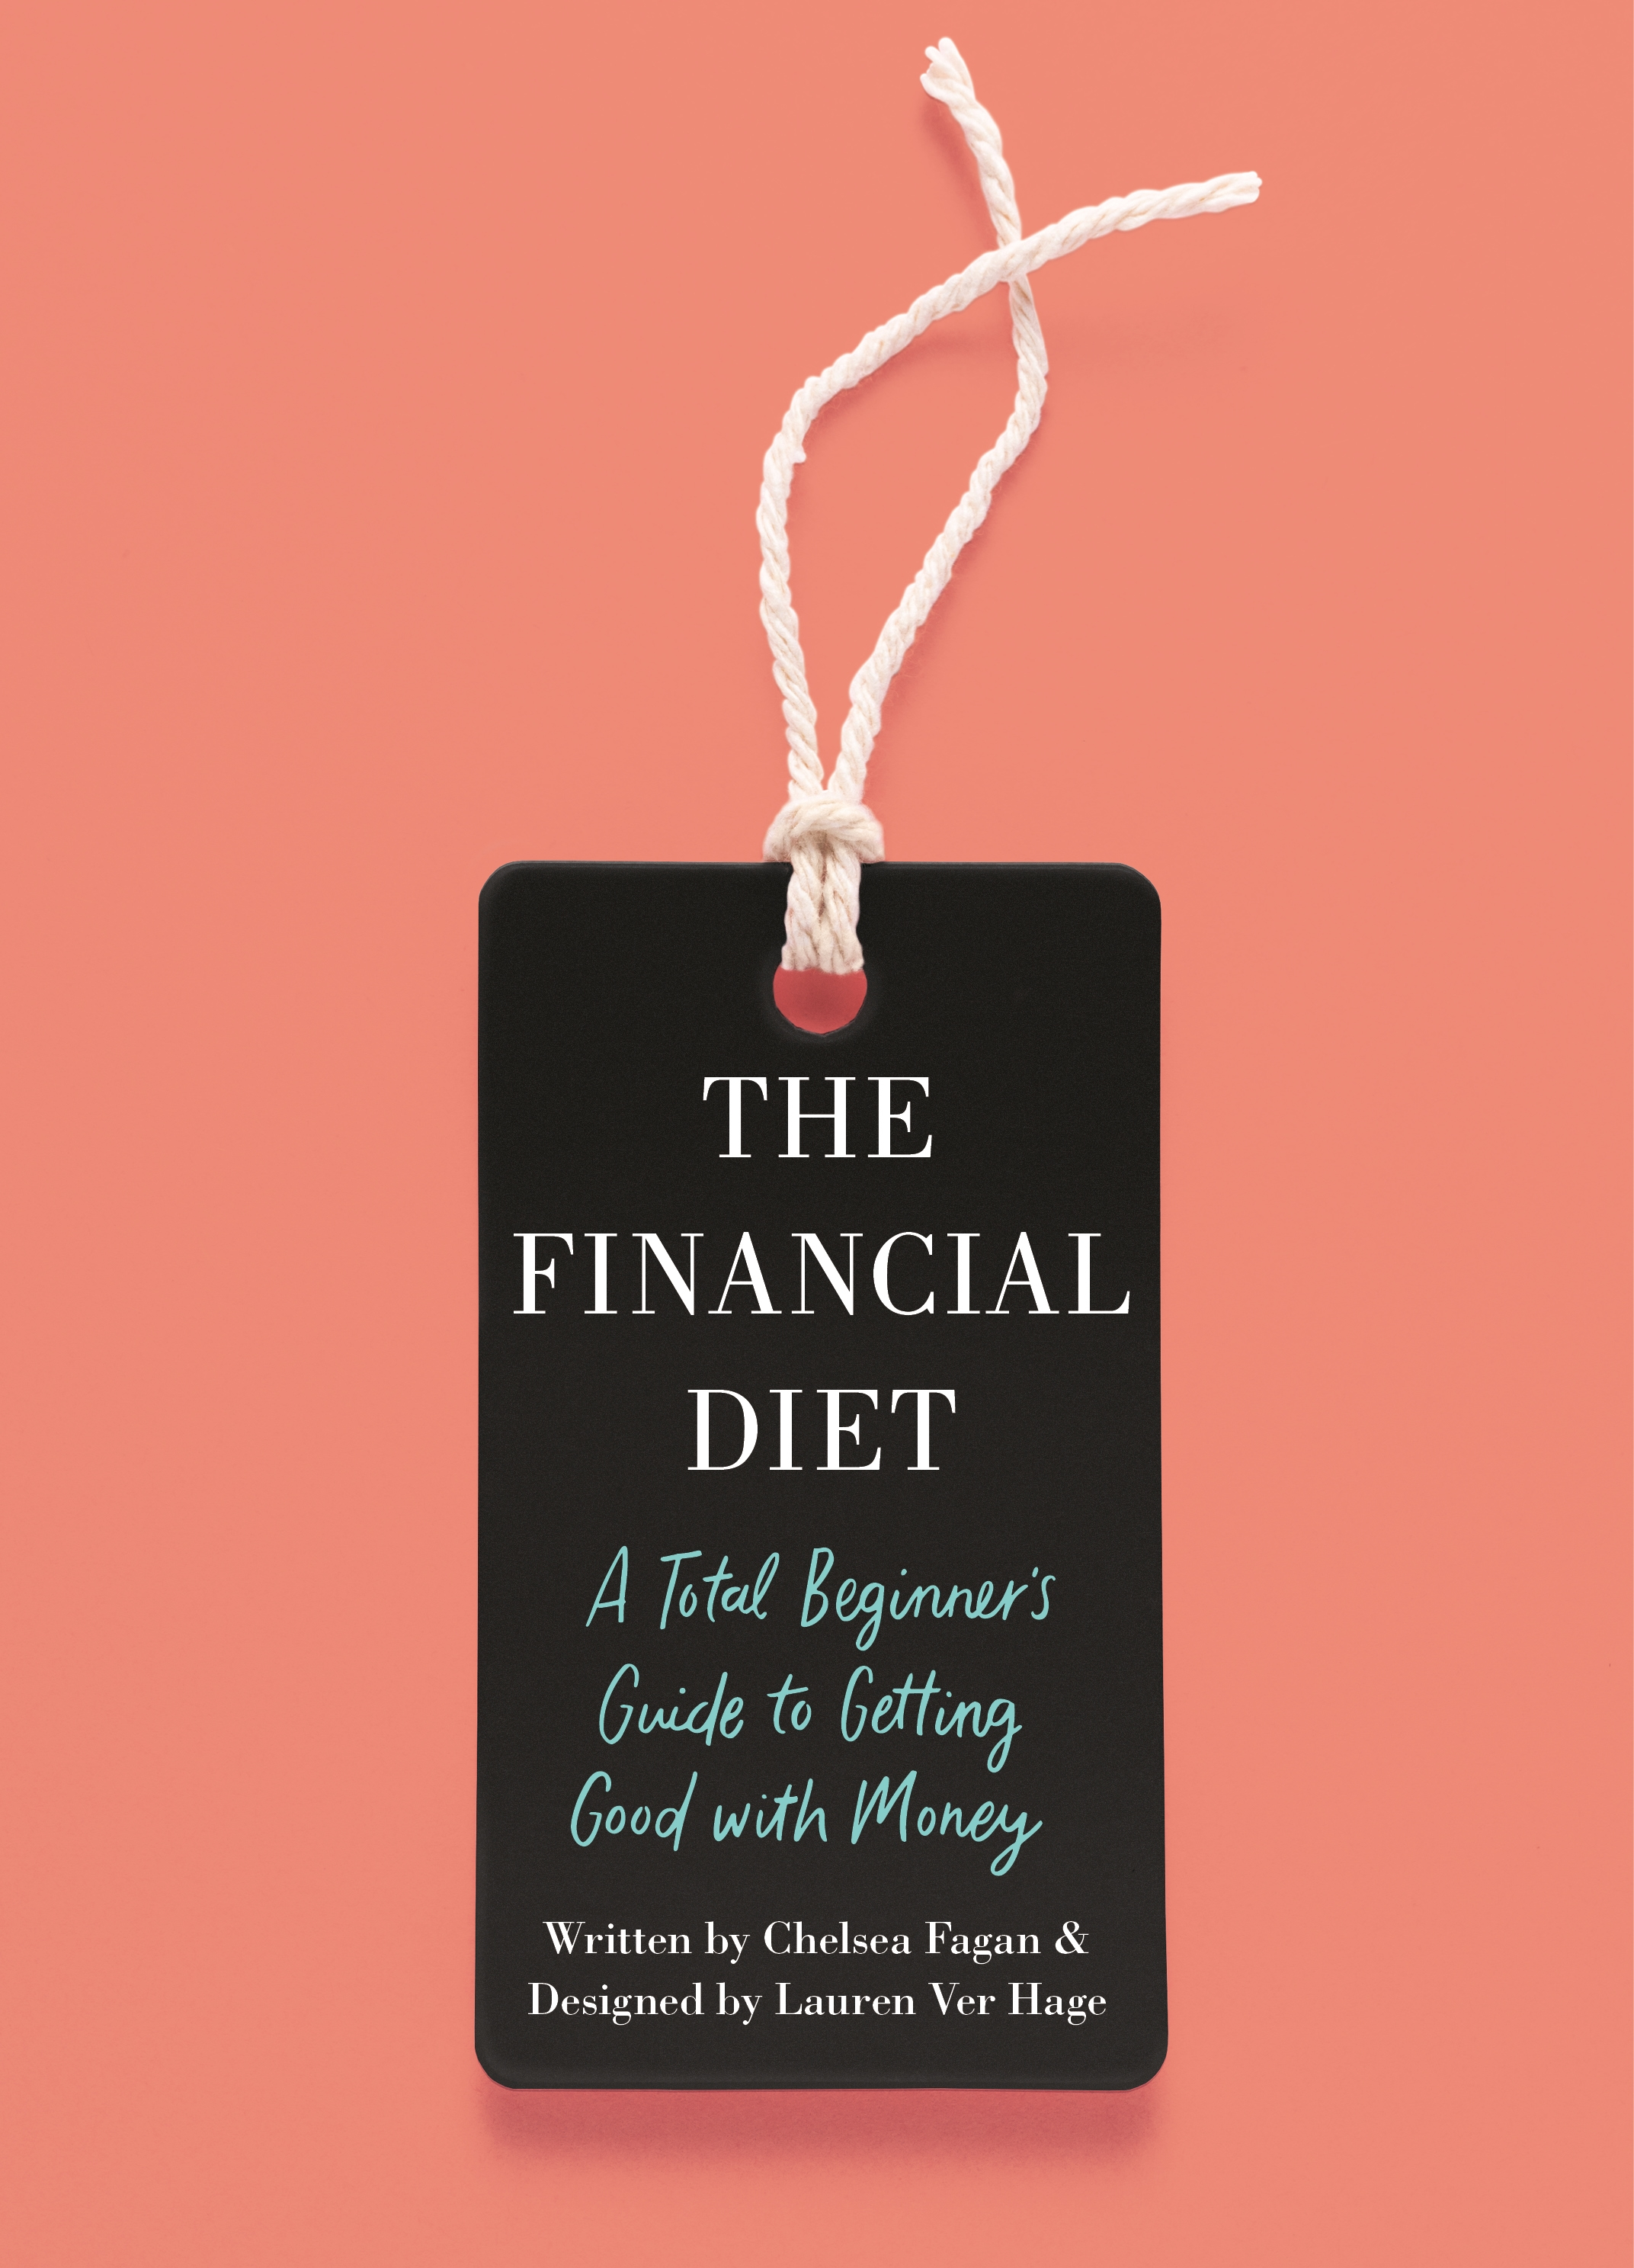 The Financial Diet A Total Beginner's Guide to Getting Good with Money